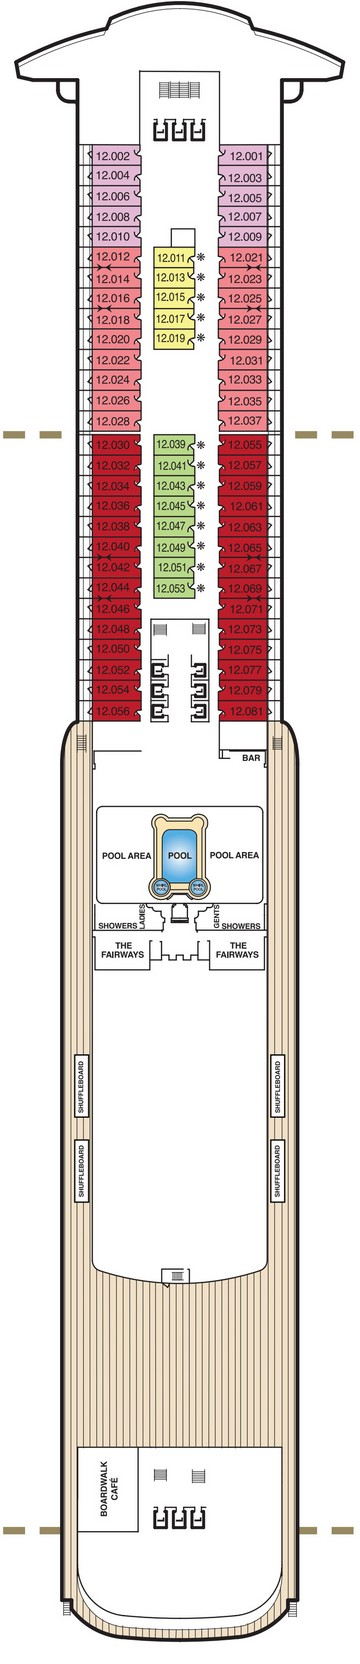 Queen Mary 2 Deck 12 layout